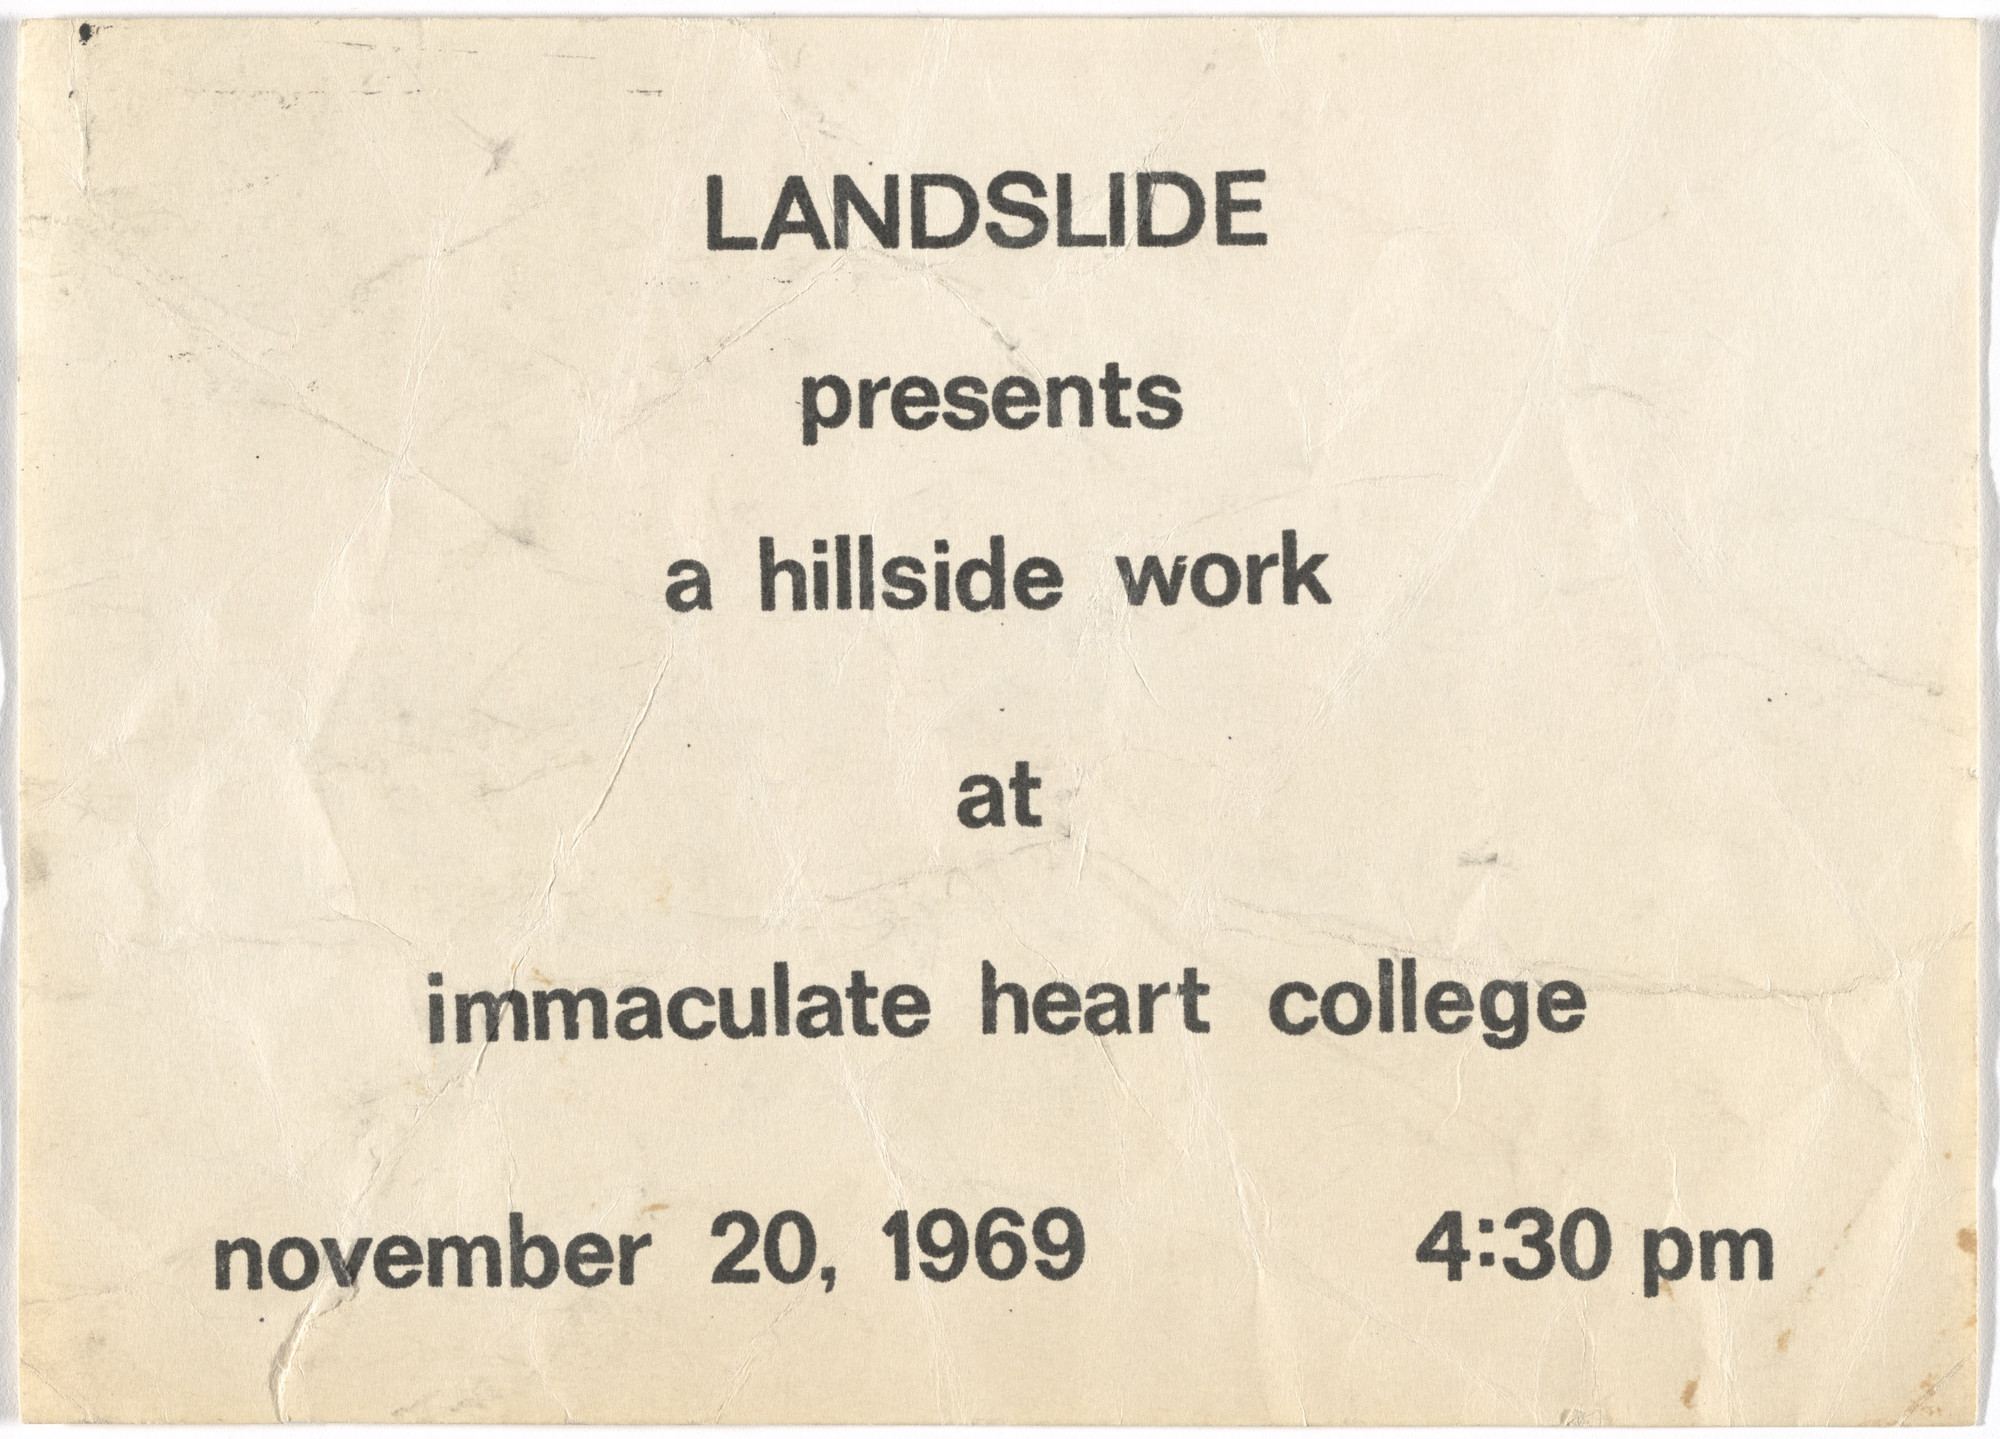 William Leavitt, Bas Jan Ader. Announcement for Hillside. 1969